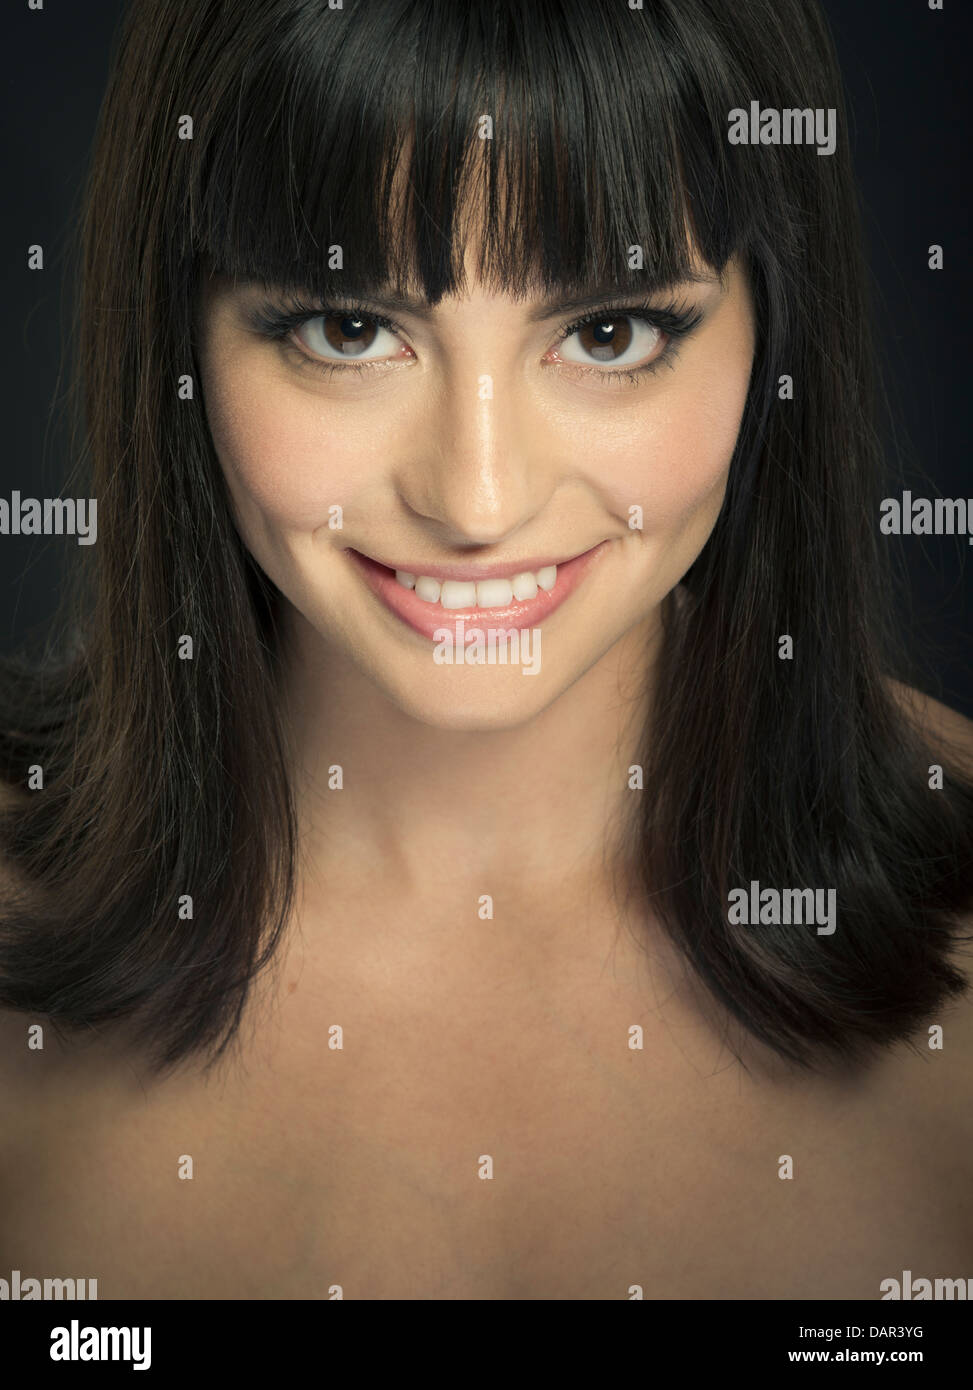 Beautiful latina woman dark brown brunette hair high cheekbones big smile. - Stock Image